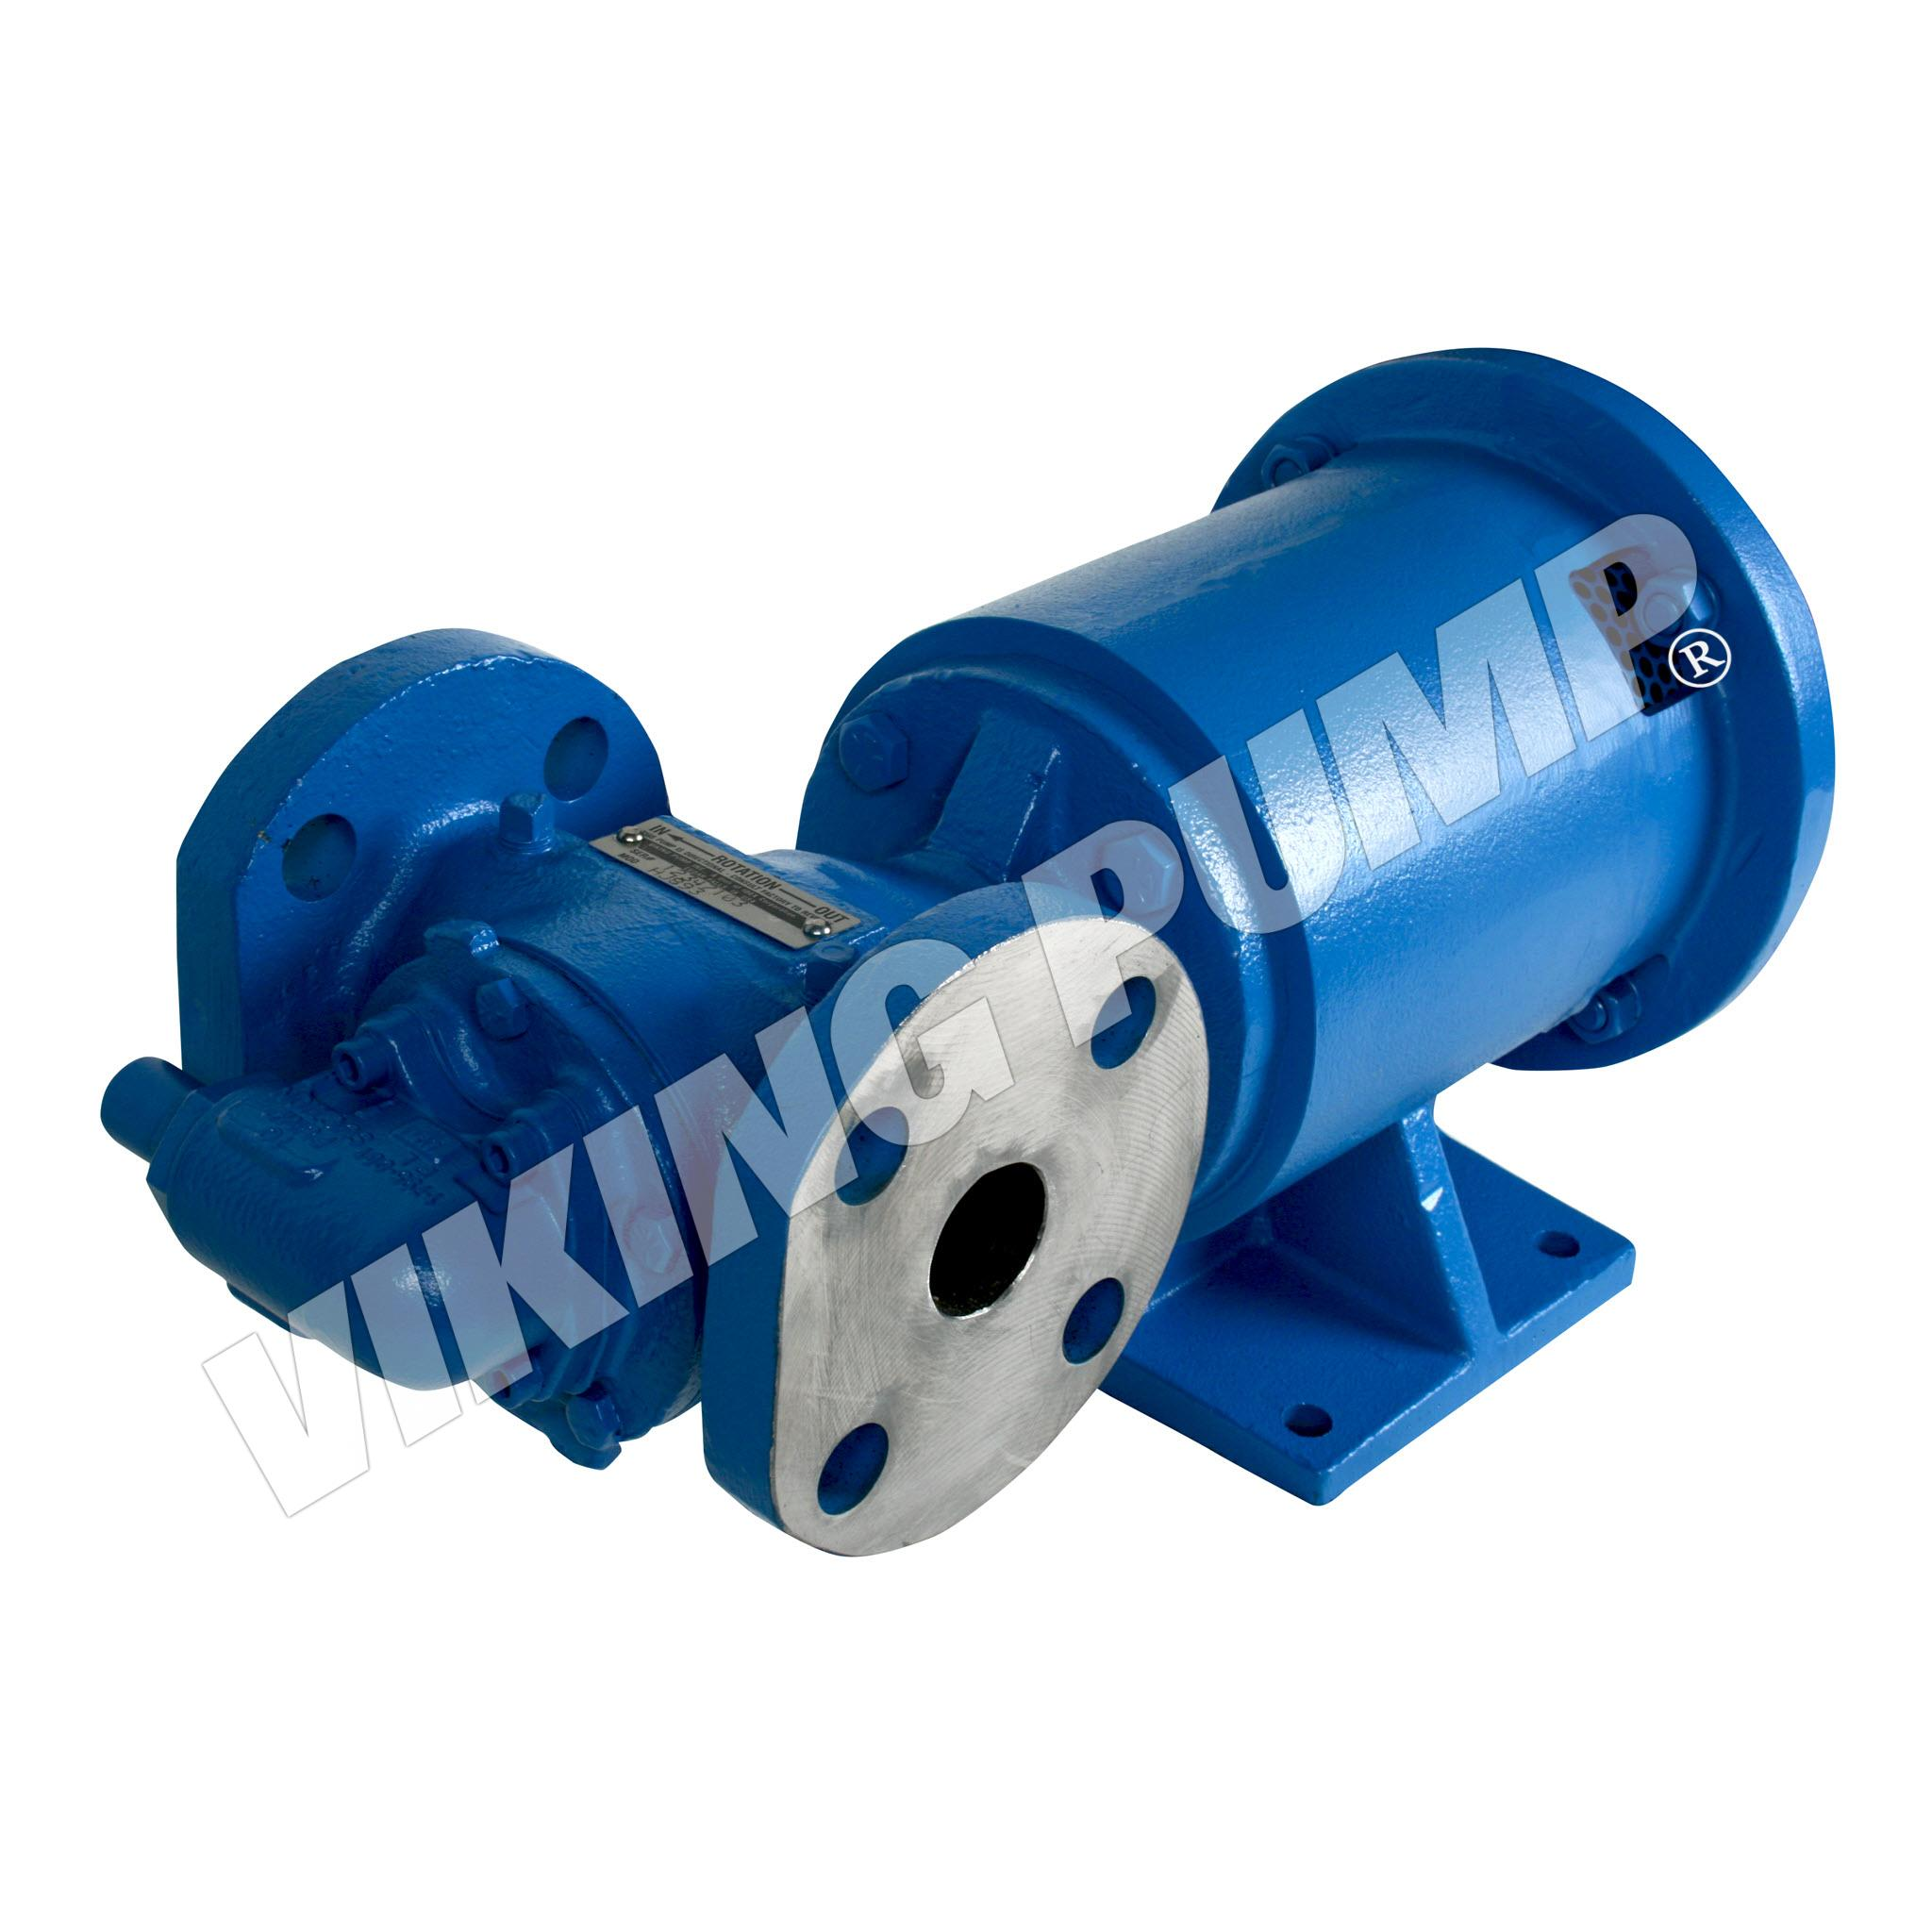 Model HJ893, Foot Mounted, Mag Drive, Relief Valve Pump with Bearing Carrier